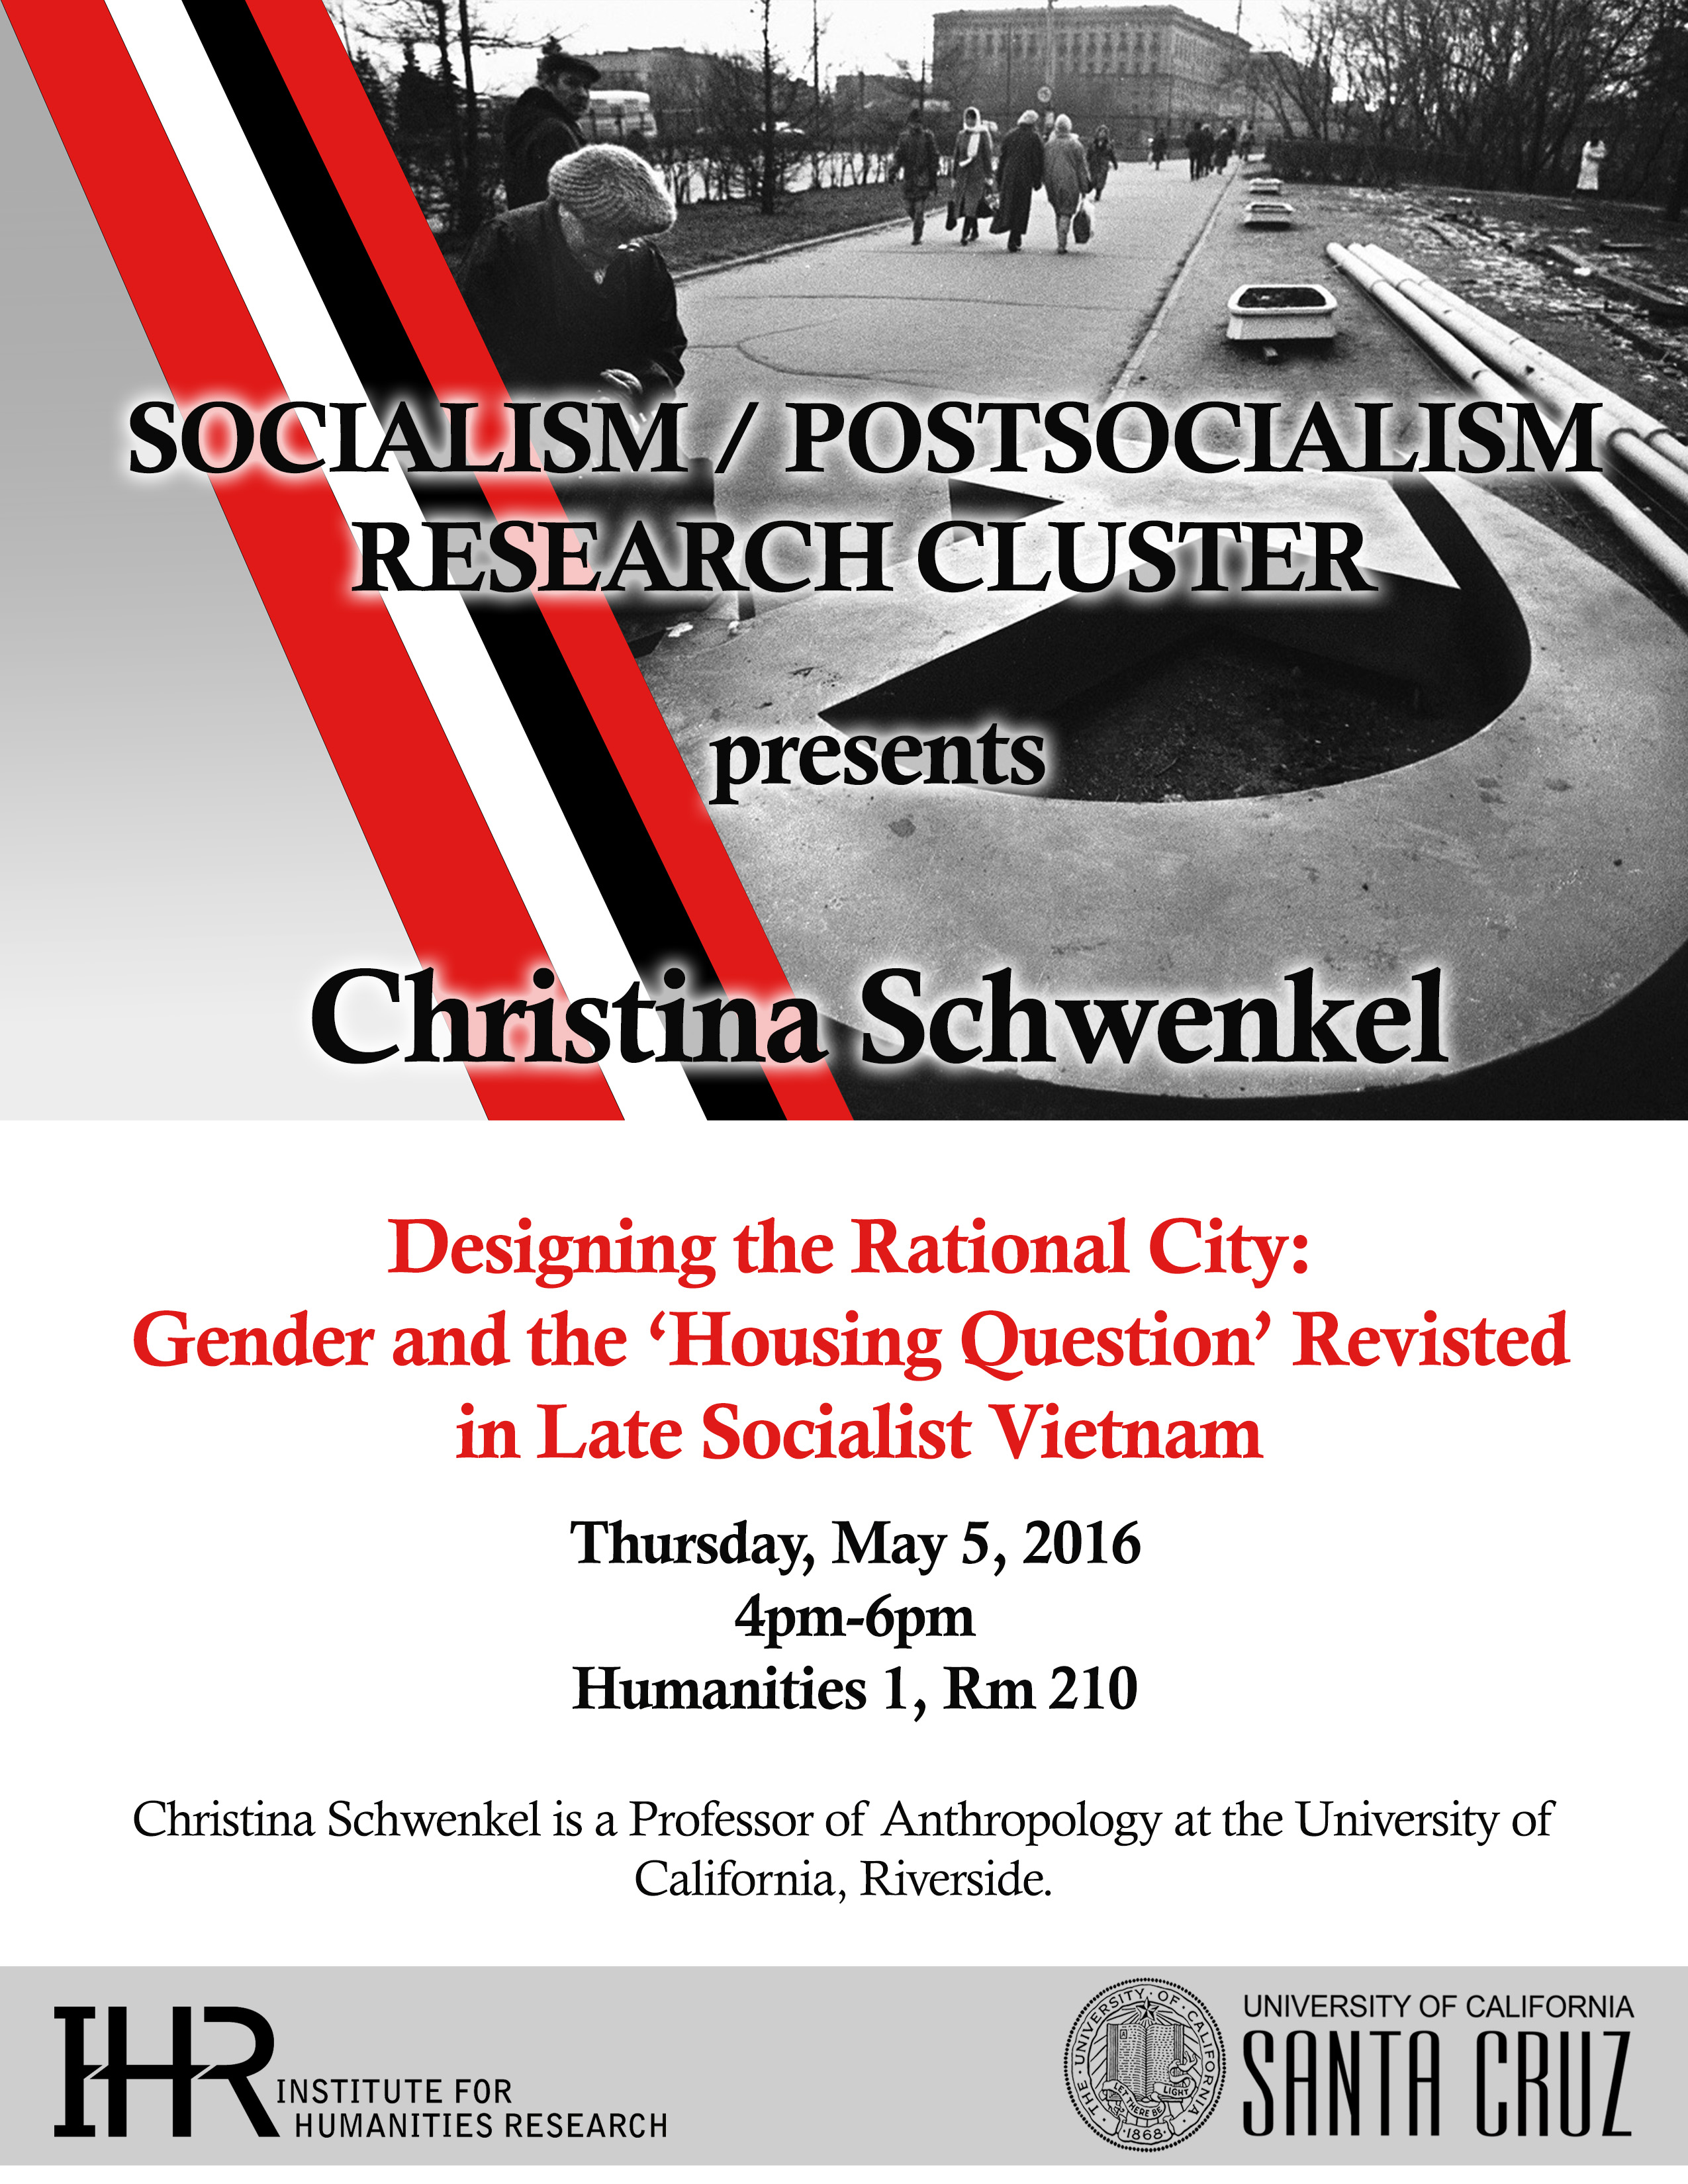 Christina Schwenkel flyer 5.5.16